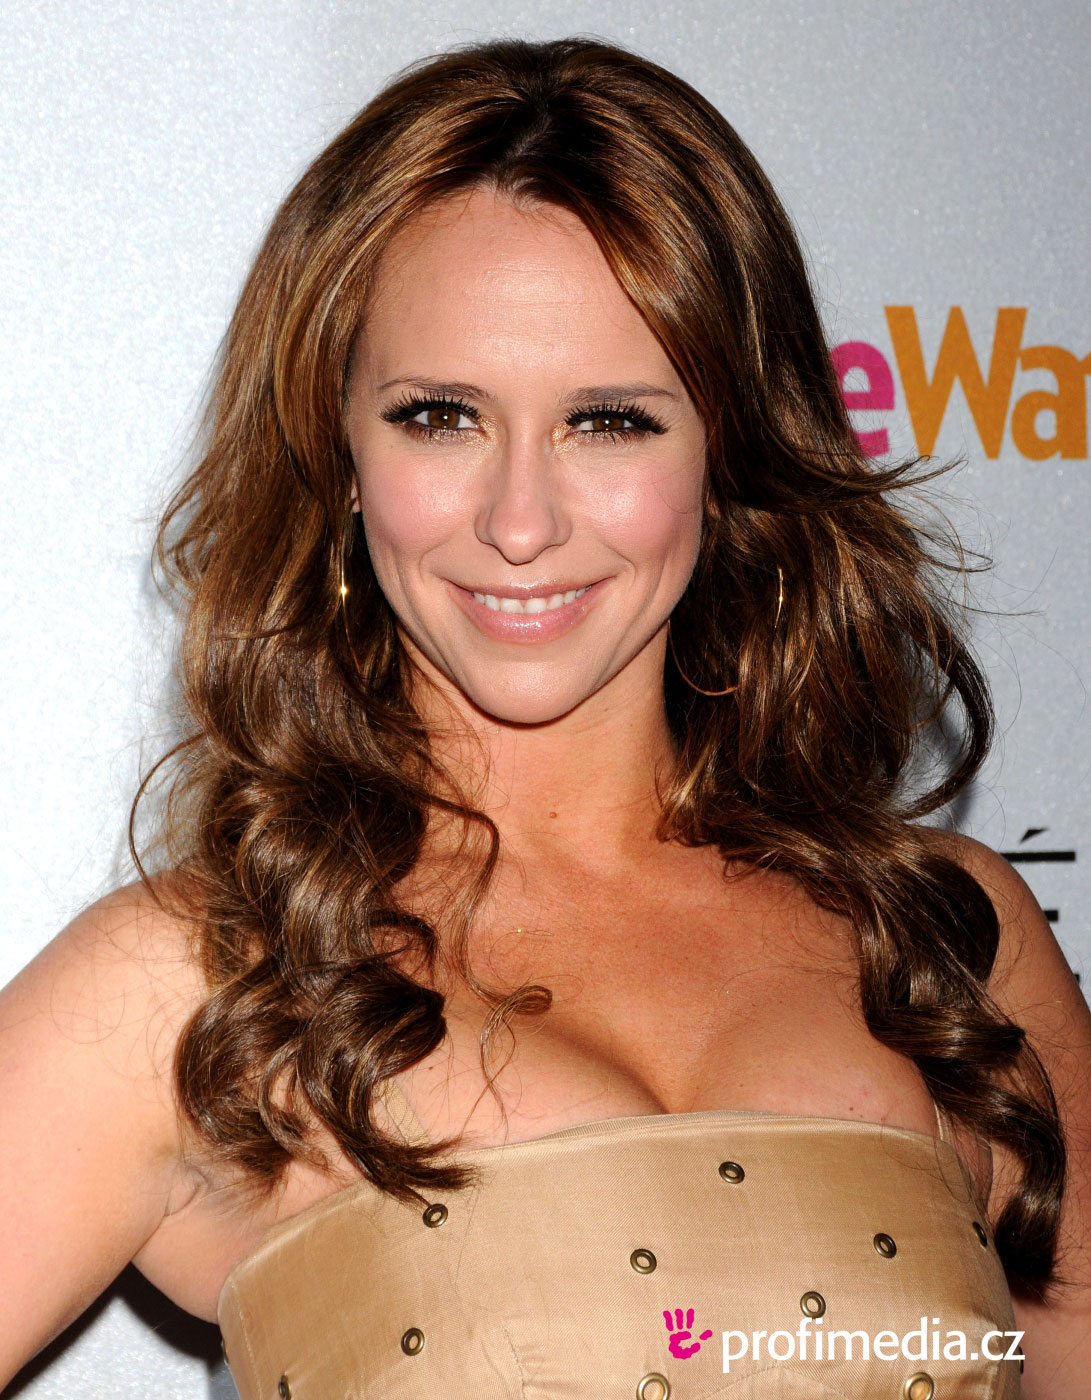 Jennifer Love Hewitt Sexy and Hot Pictures - YouTube